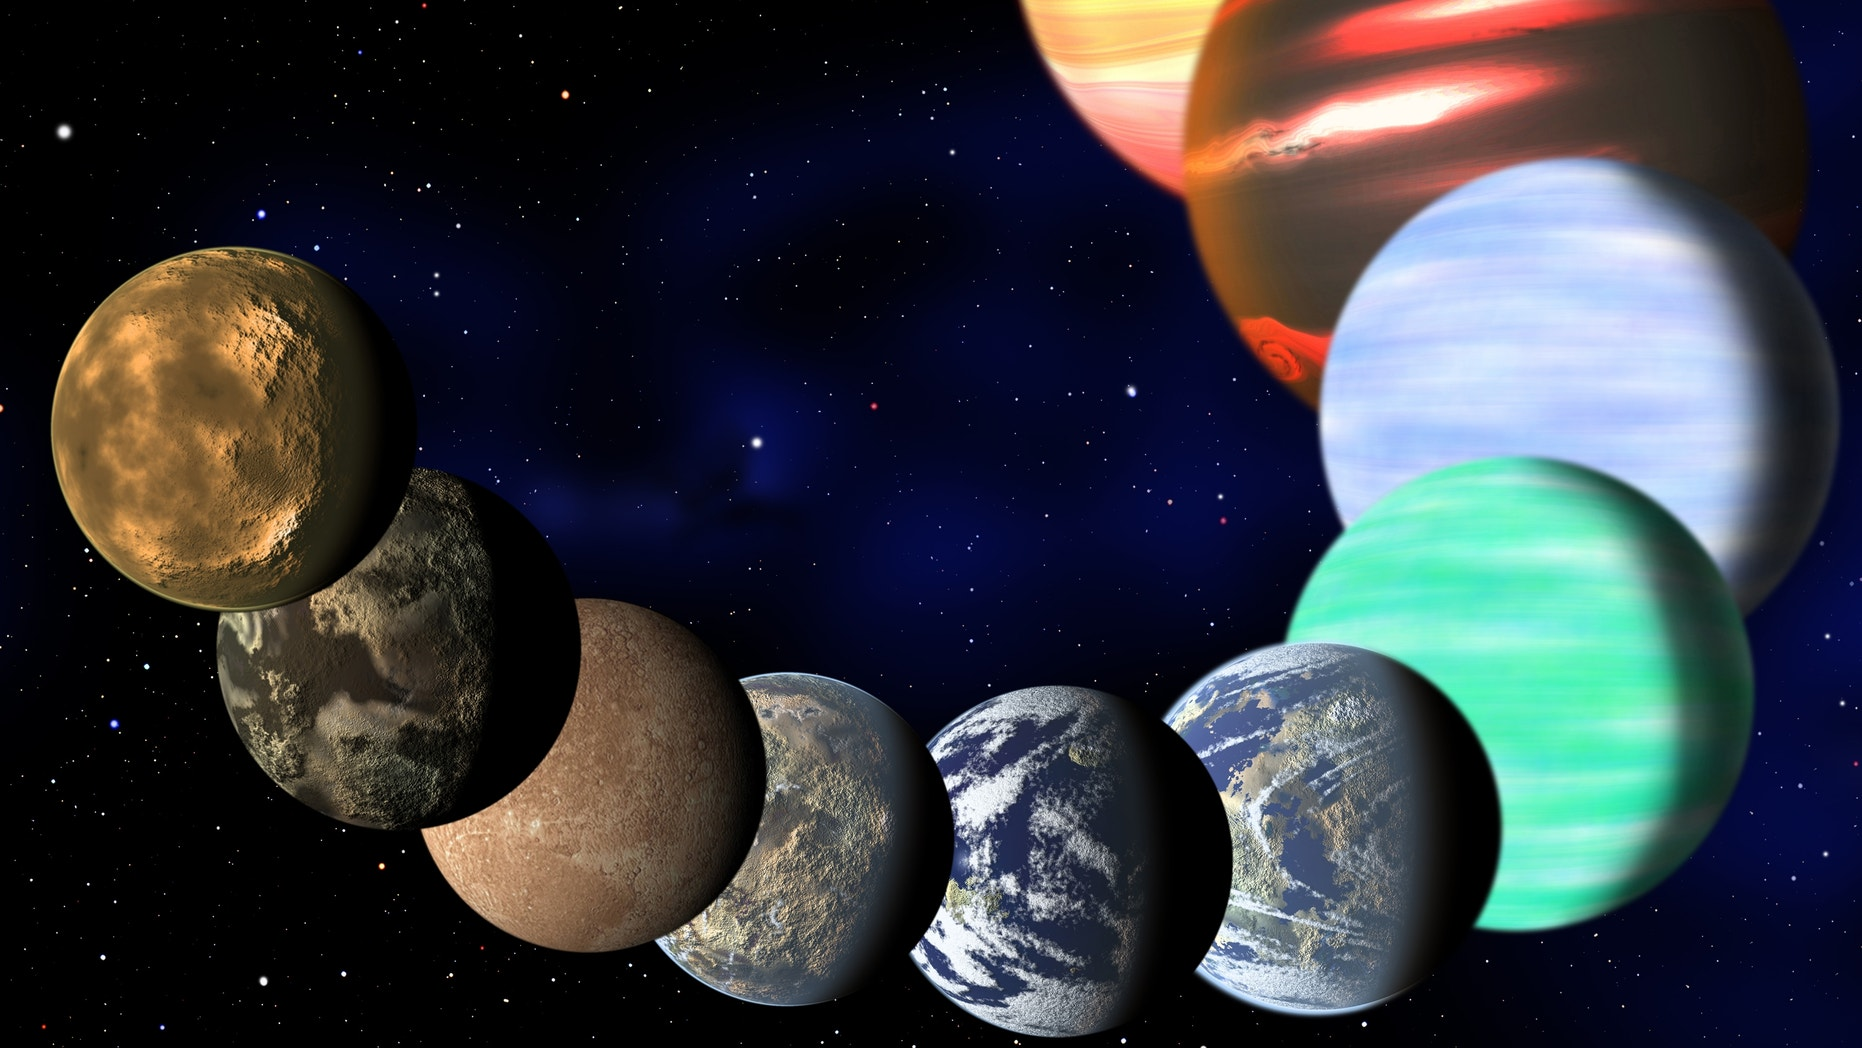 Jan. 7,2013: The different types of planets in our Milky Way galaxy detected by NASA's Kepler spacecraft.